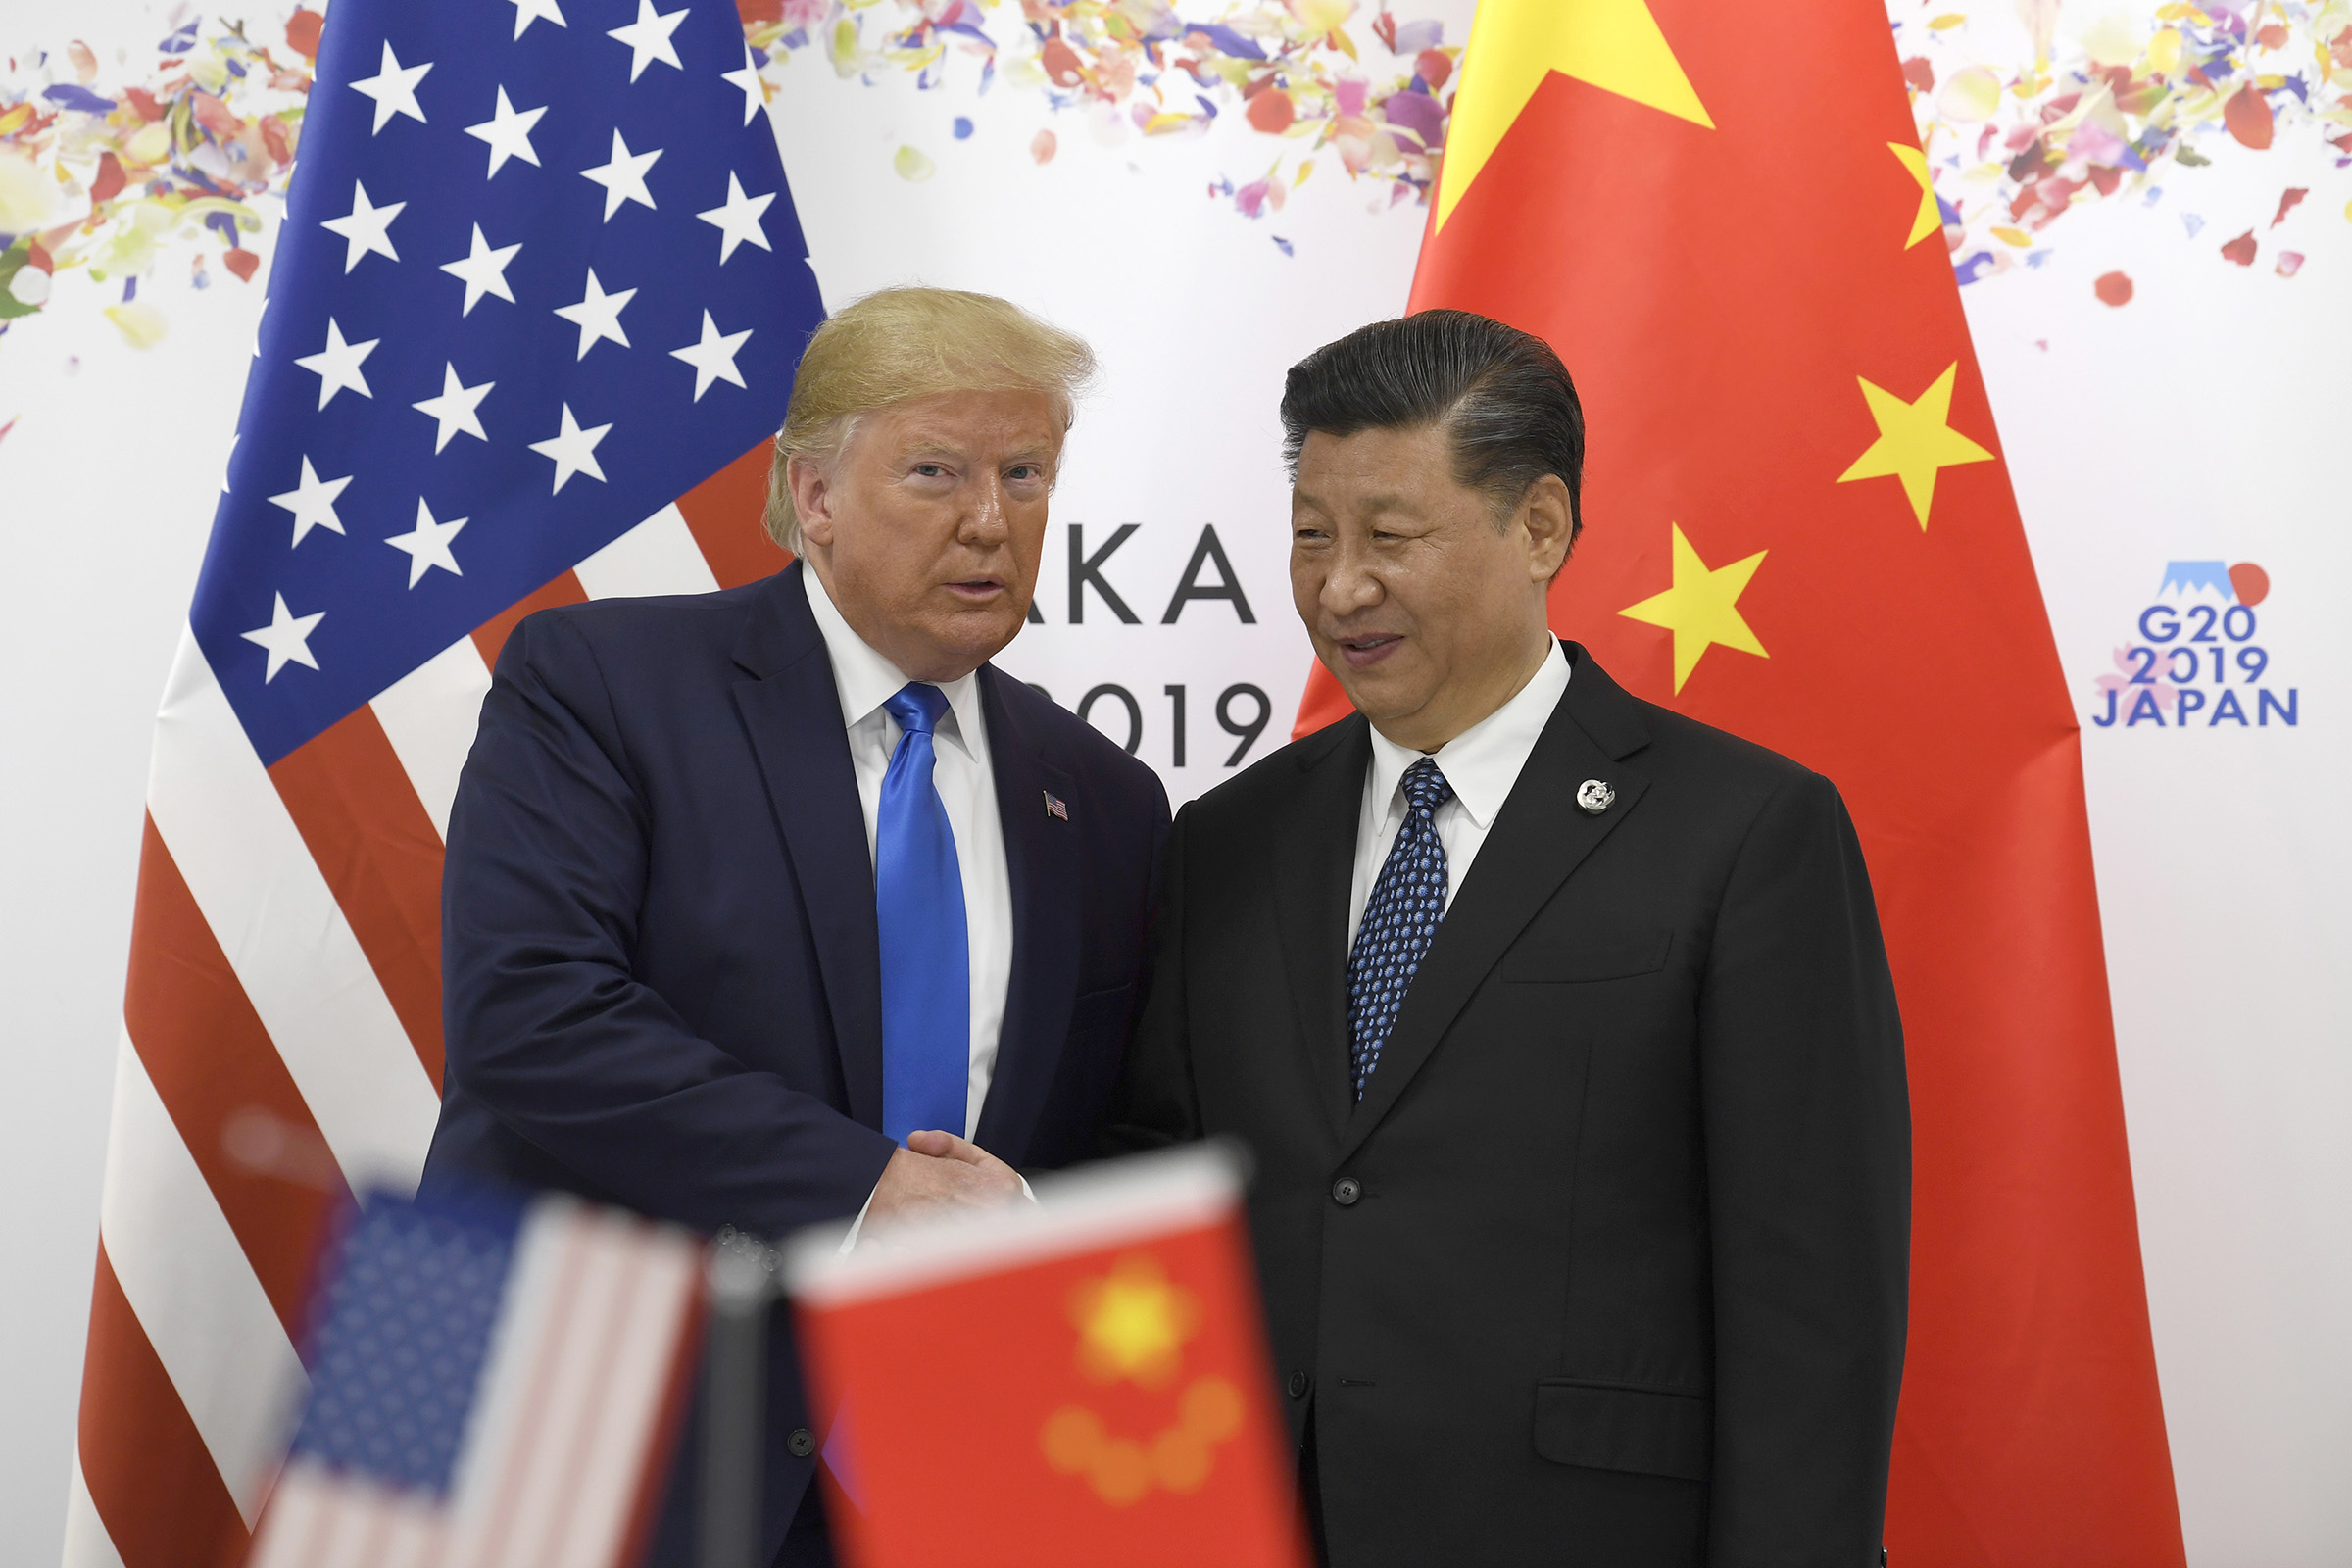 President Donald Trump poses for a photo with Chinese President Xi Jinping during a meeting on the sidelines of the G-20 summit in Osaka, Japan, on June 29, 2019.